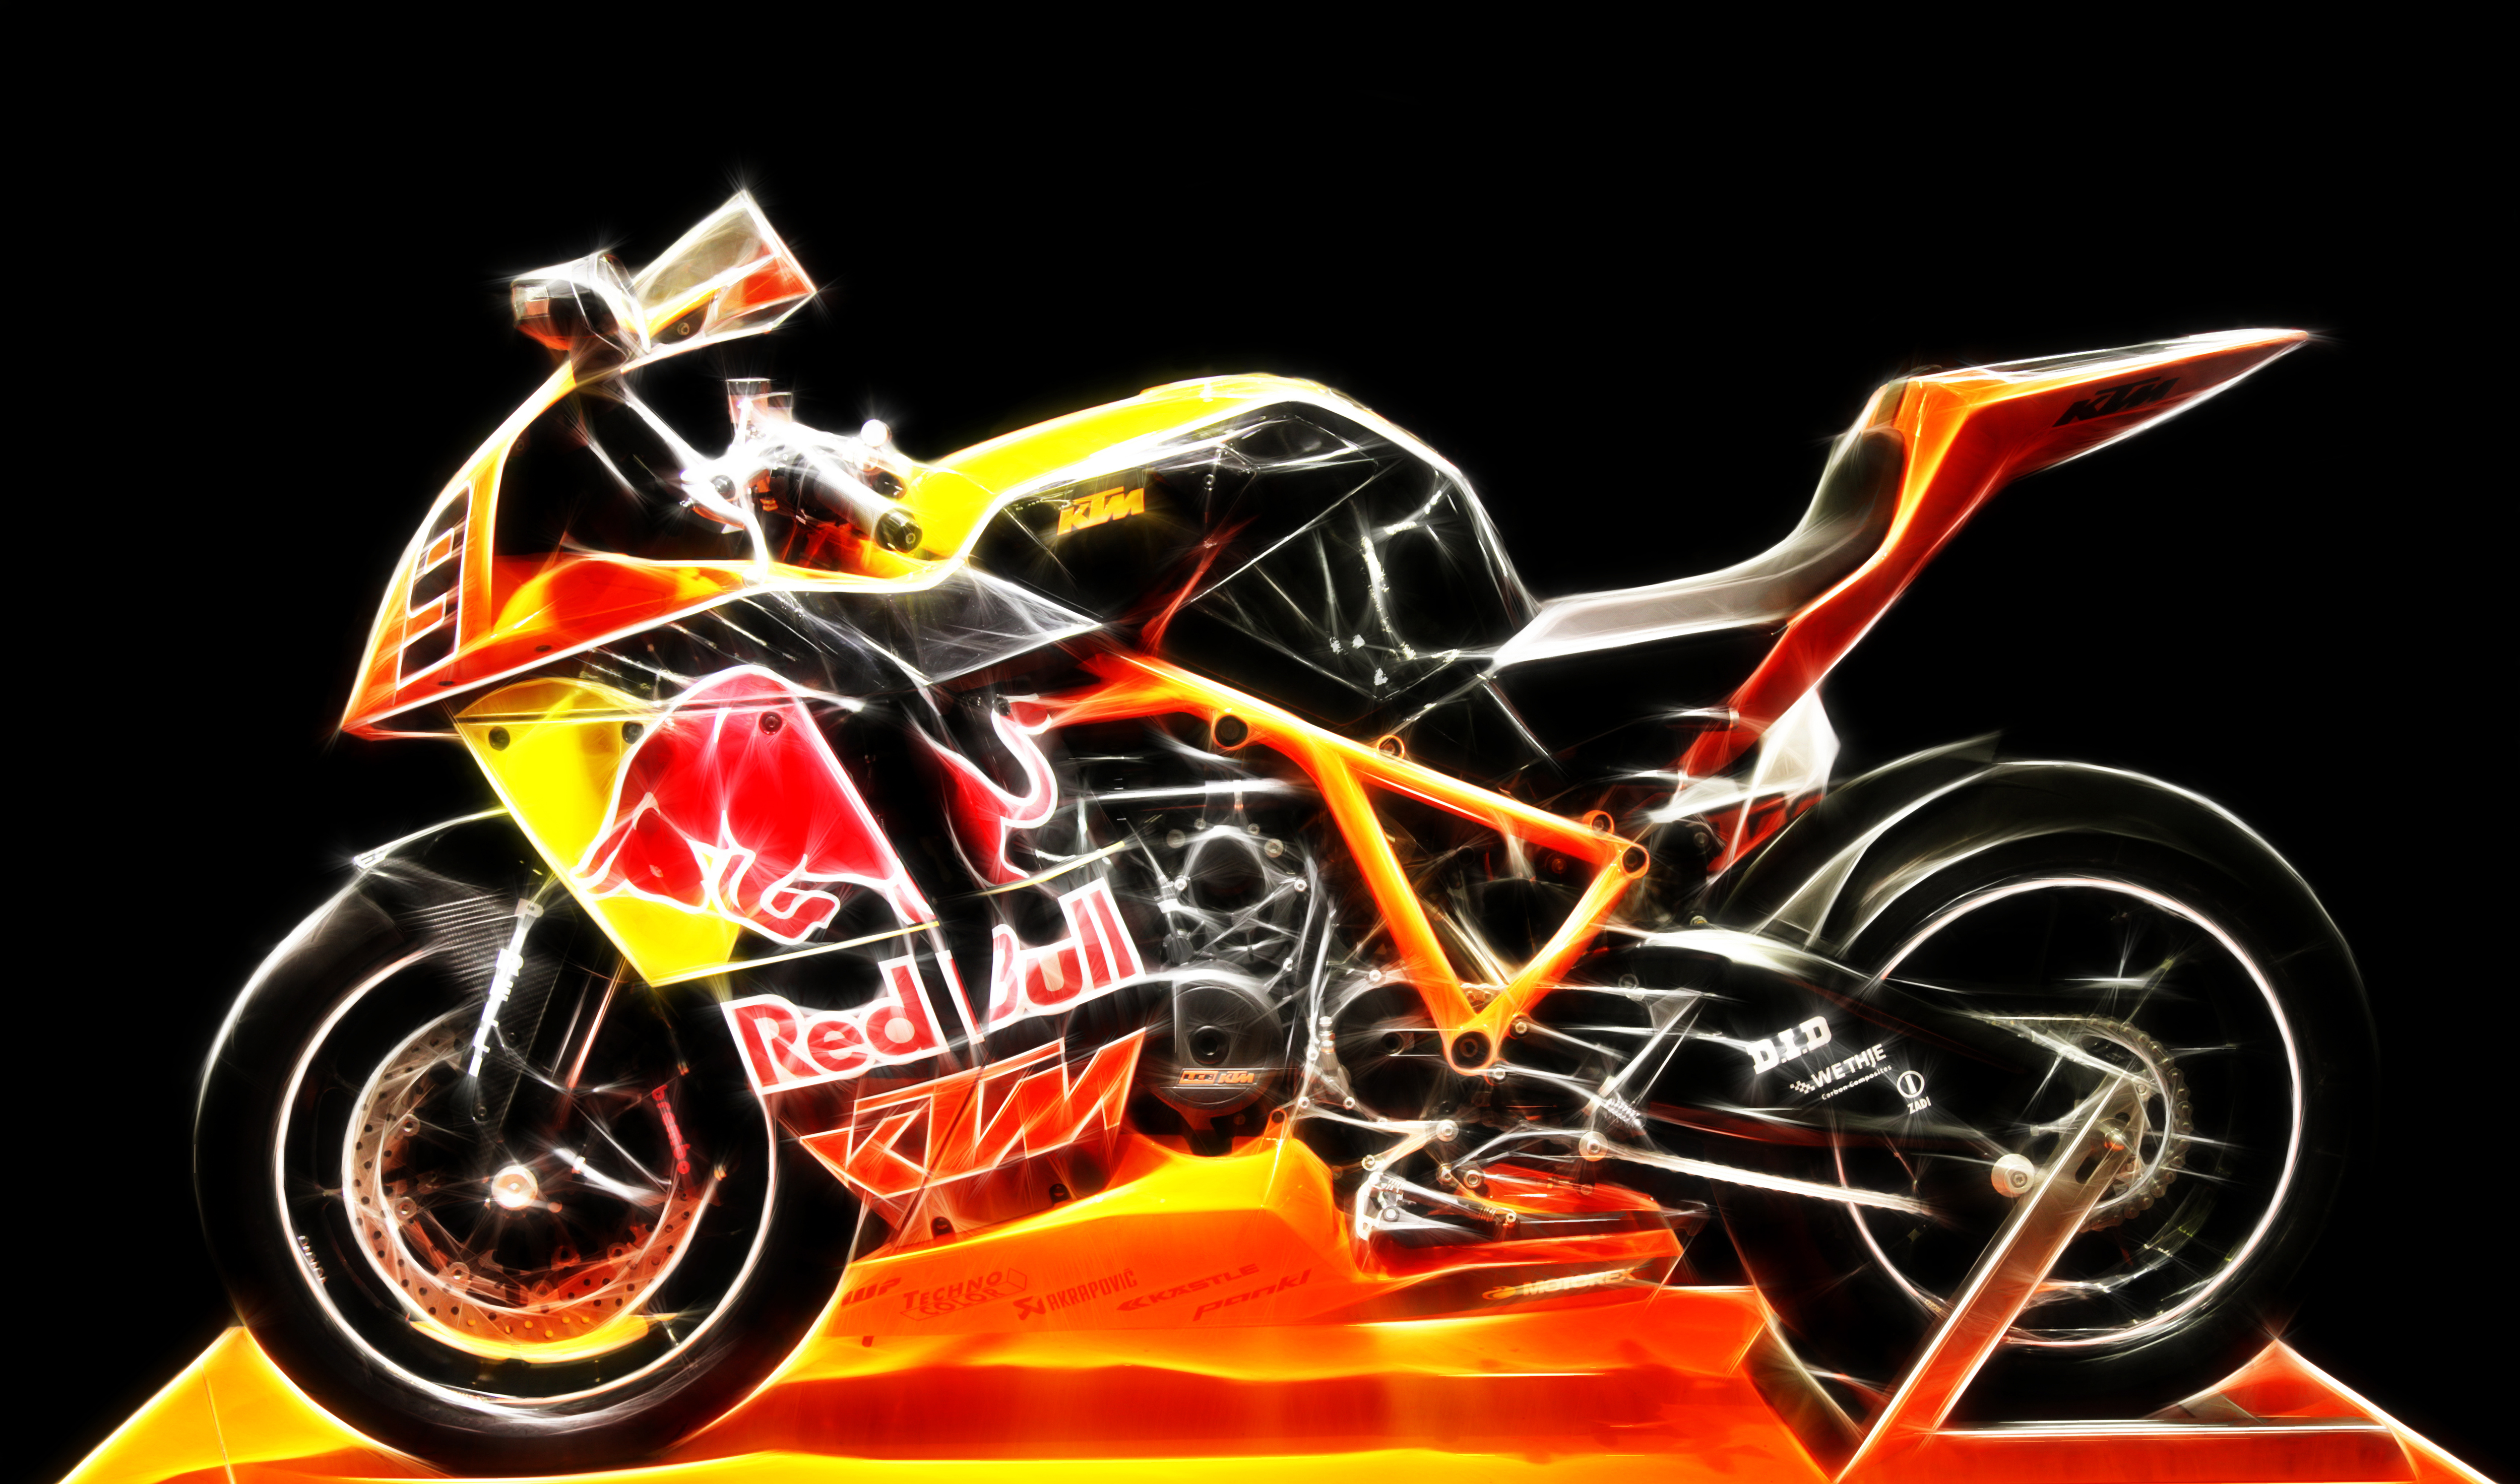 Motorcycle Racing 4k Ultra Hd Wallpaper Background Image